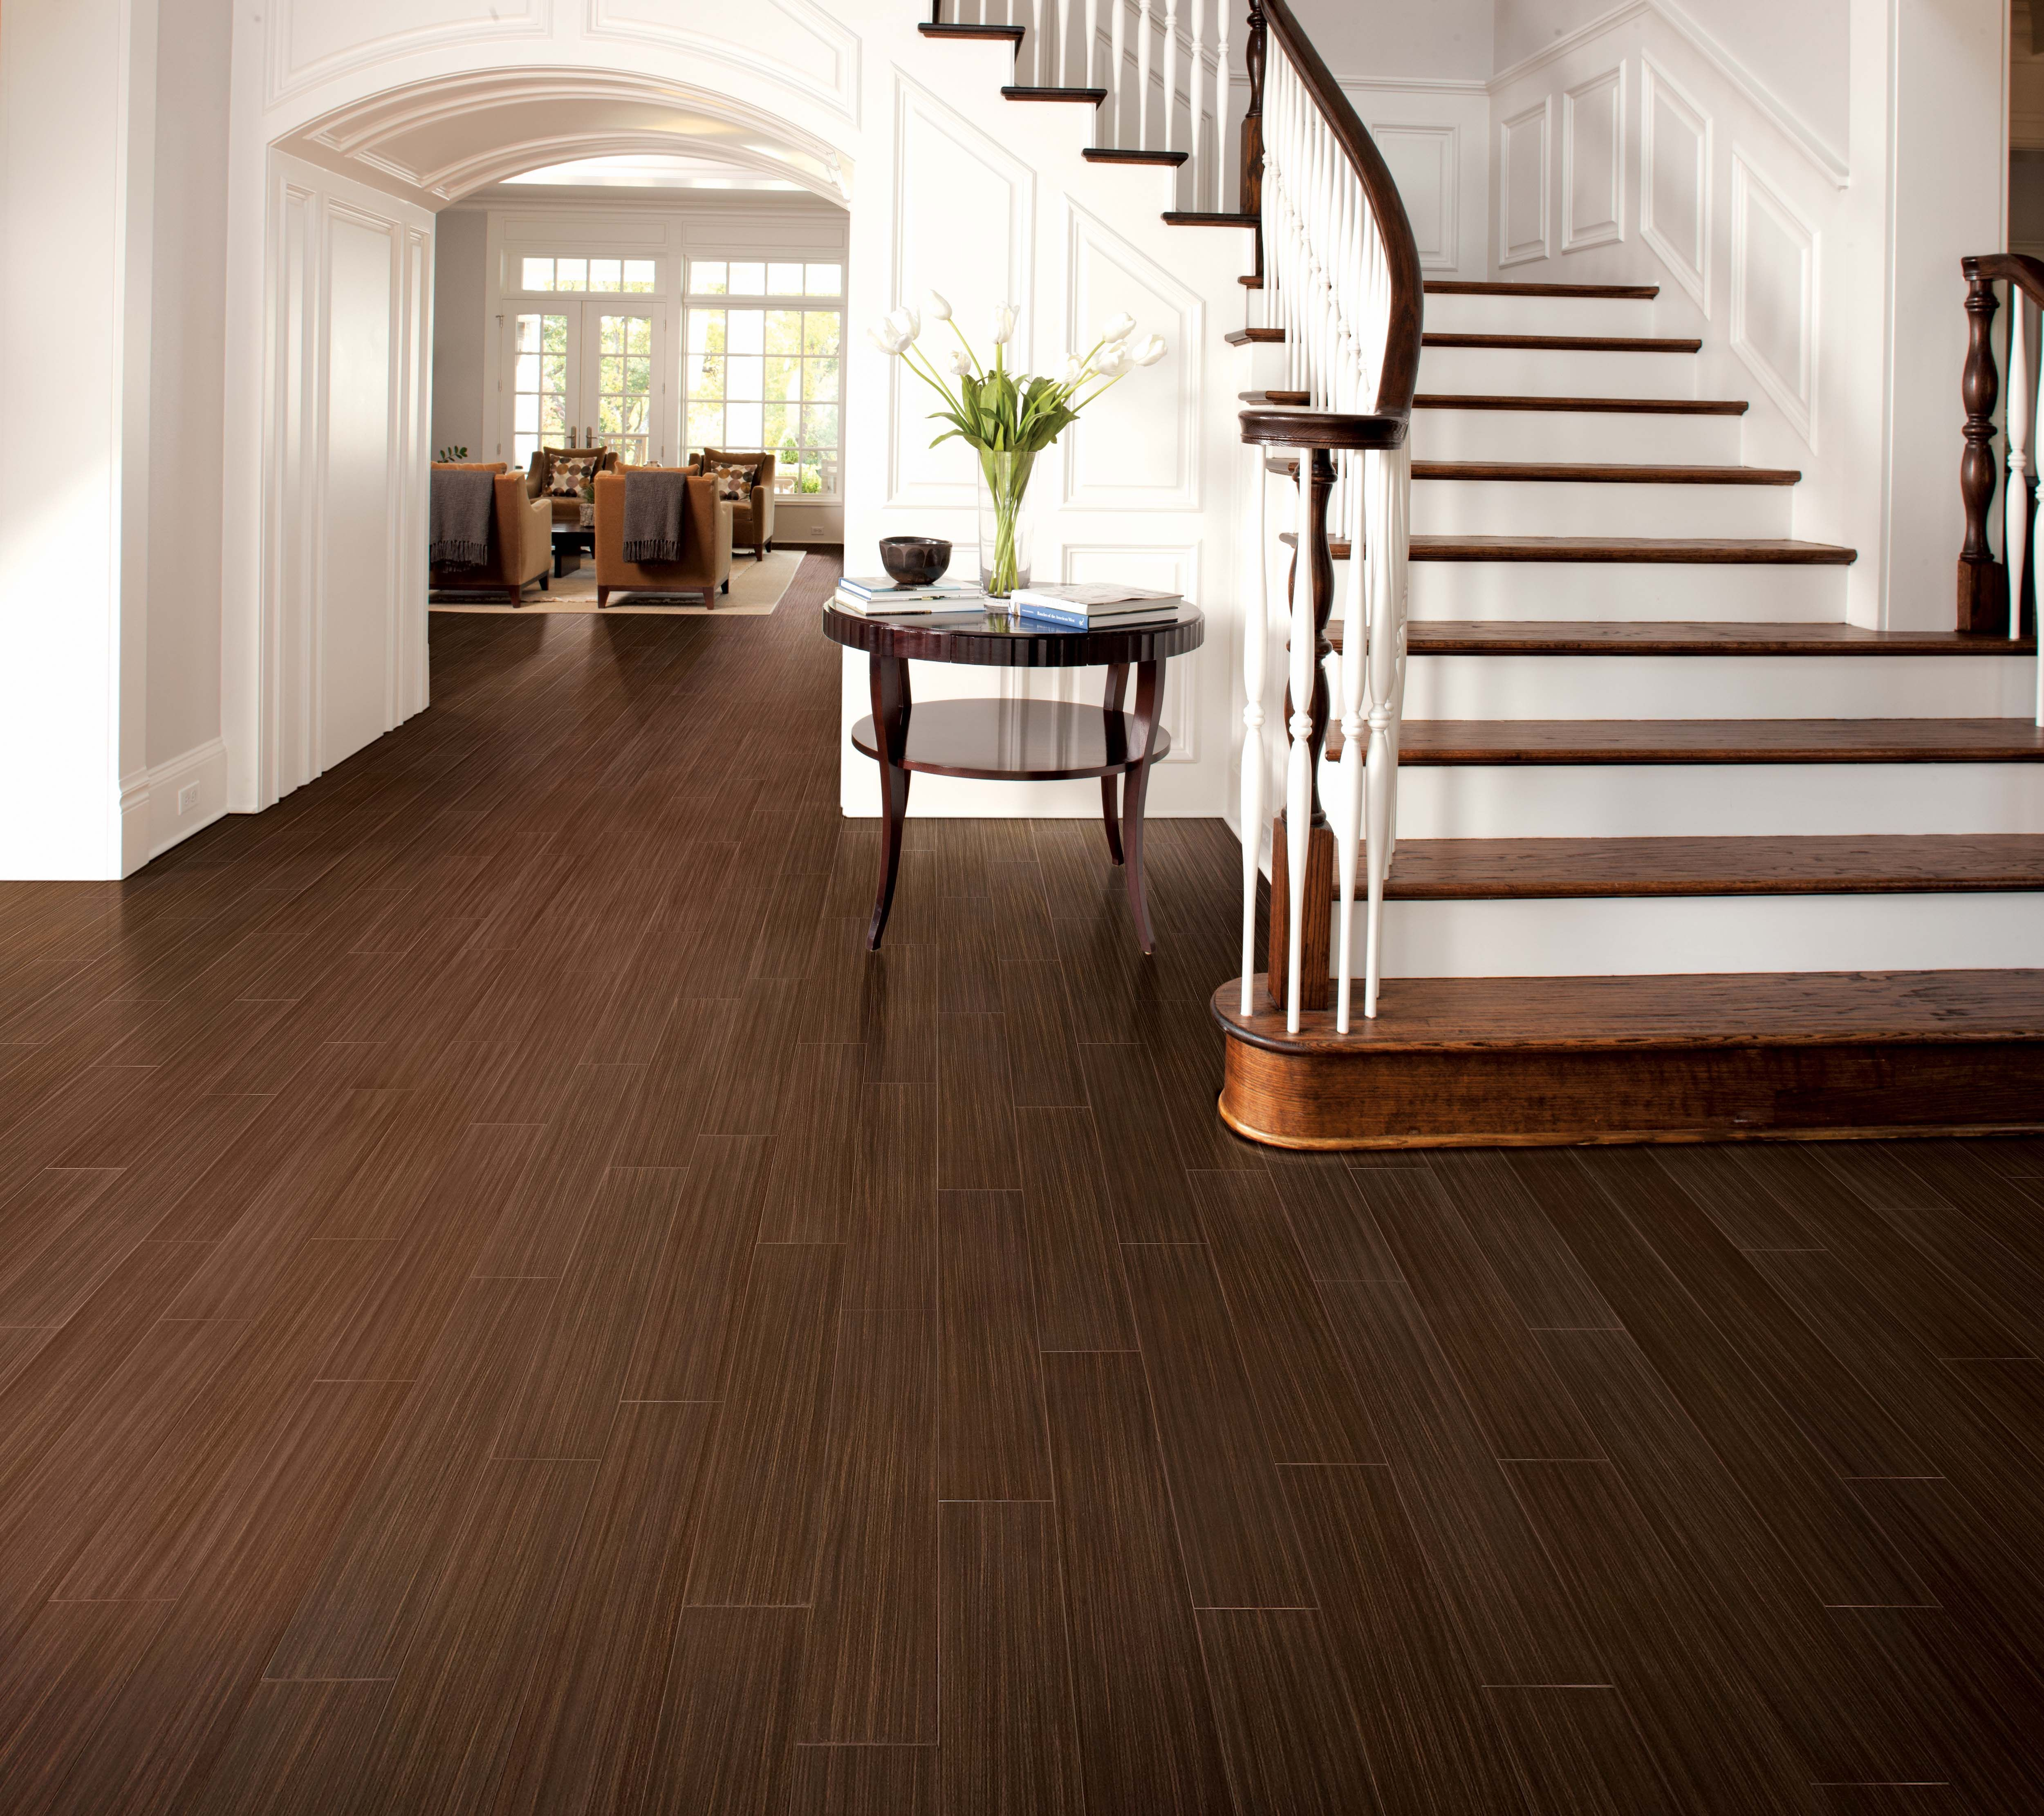 tile floors series ceramic p sonoma b cabot driftwood wood like that free samples look